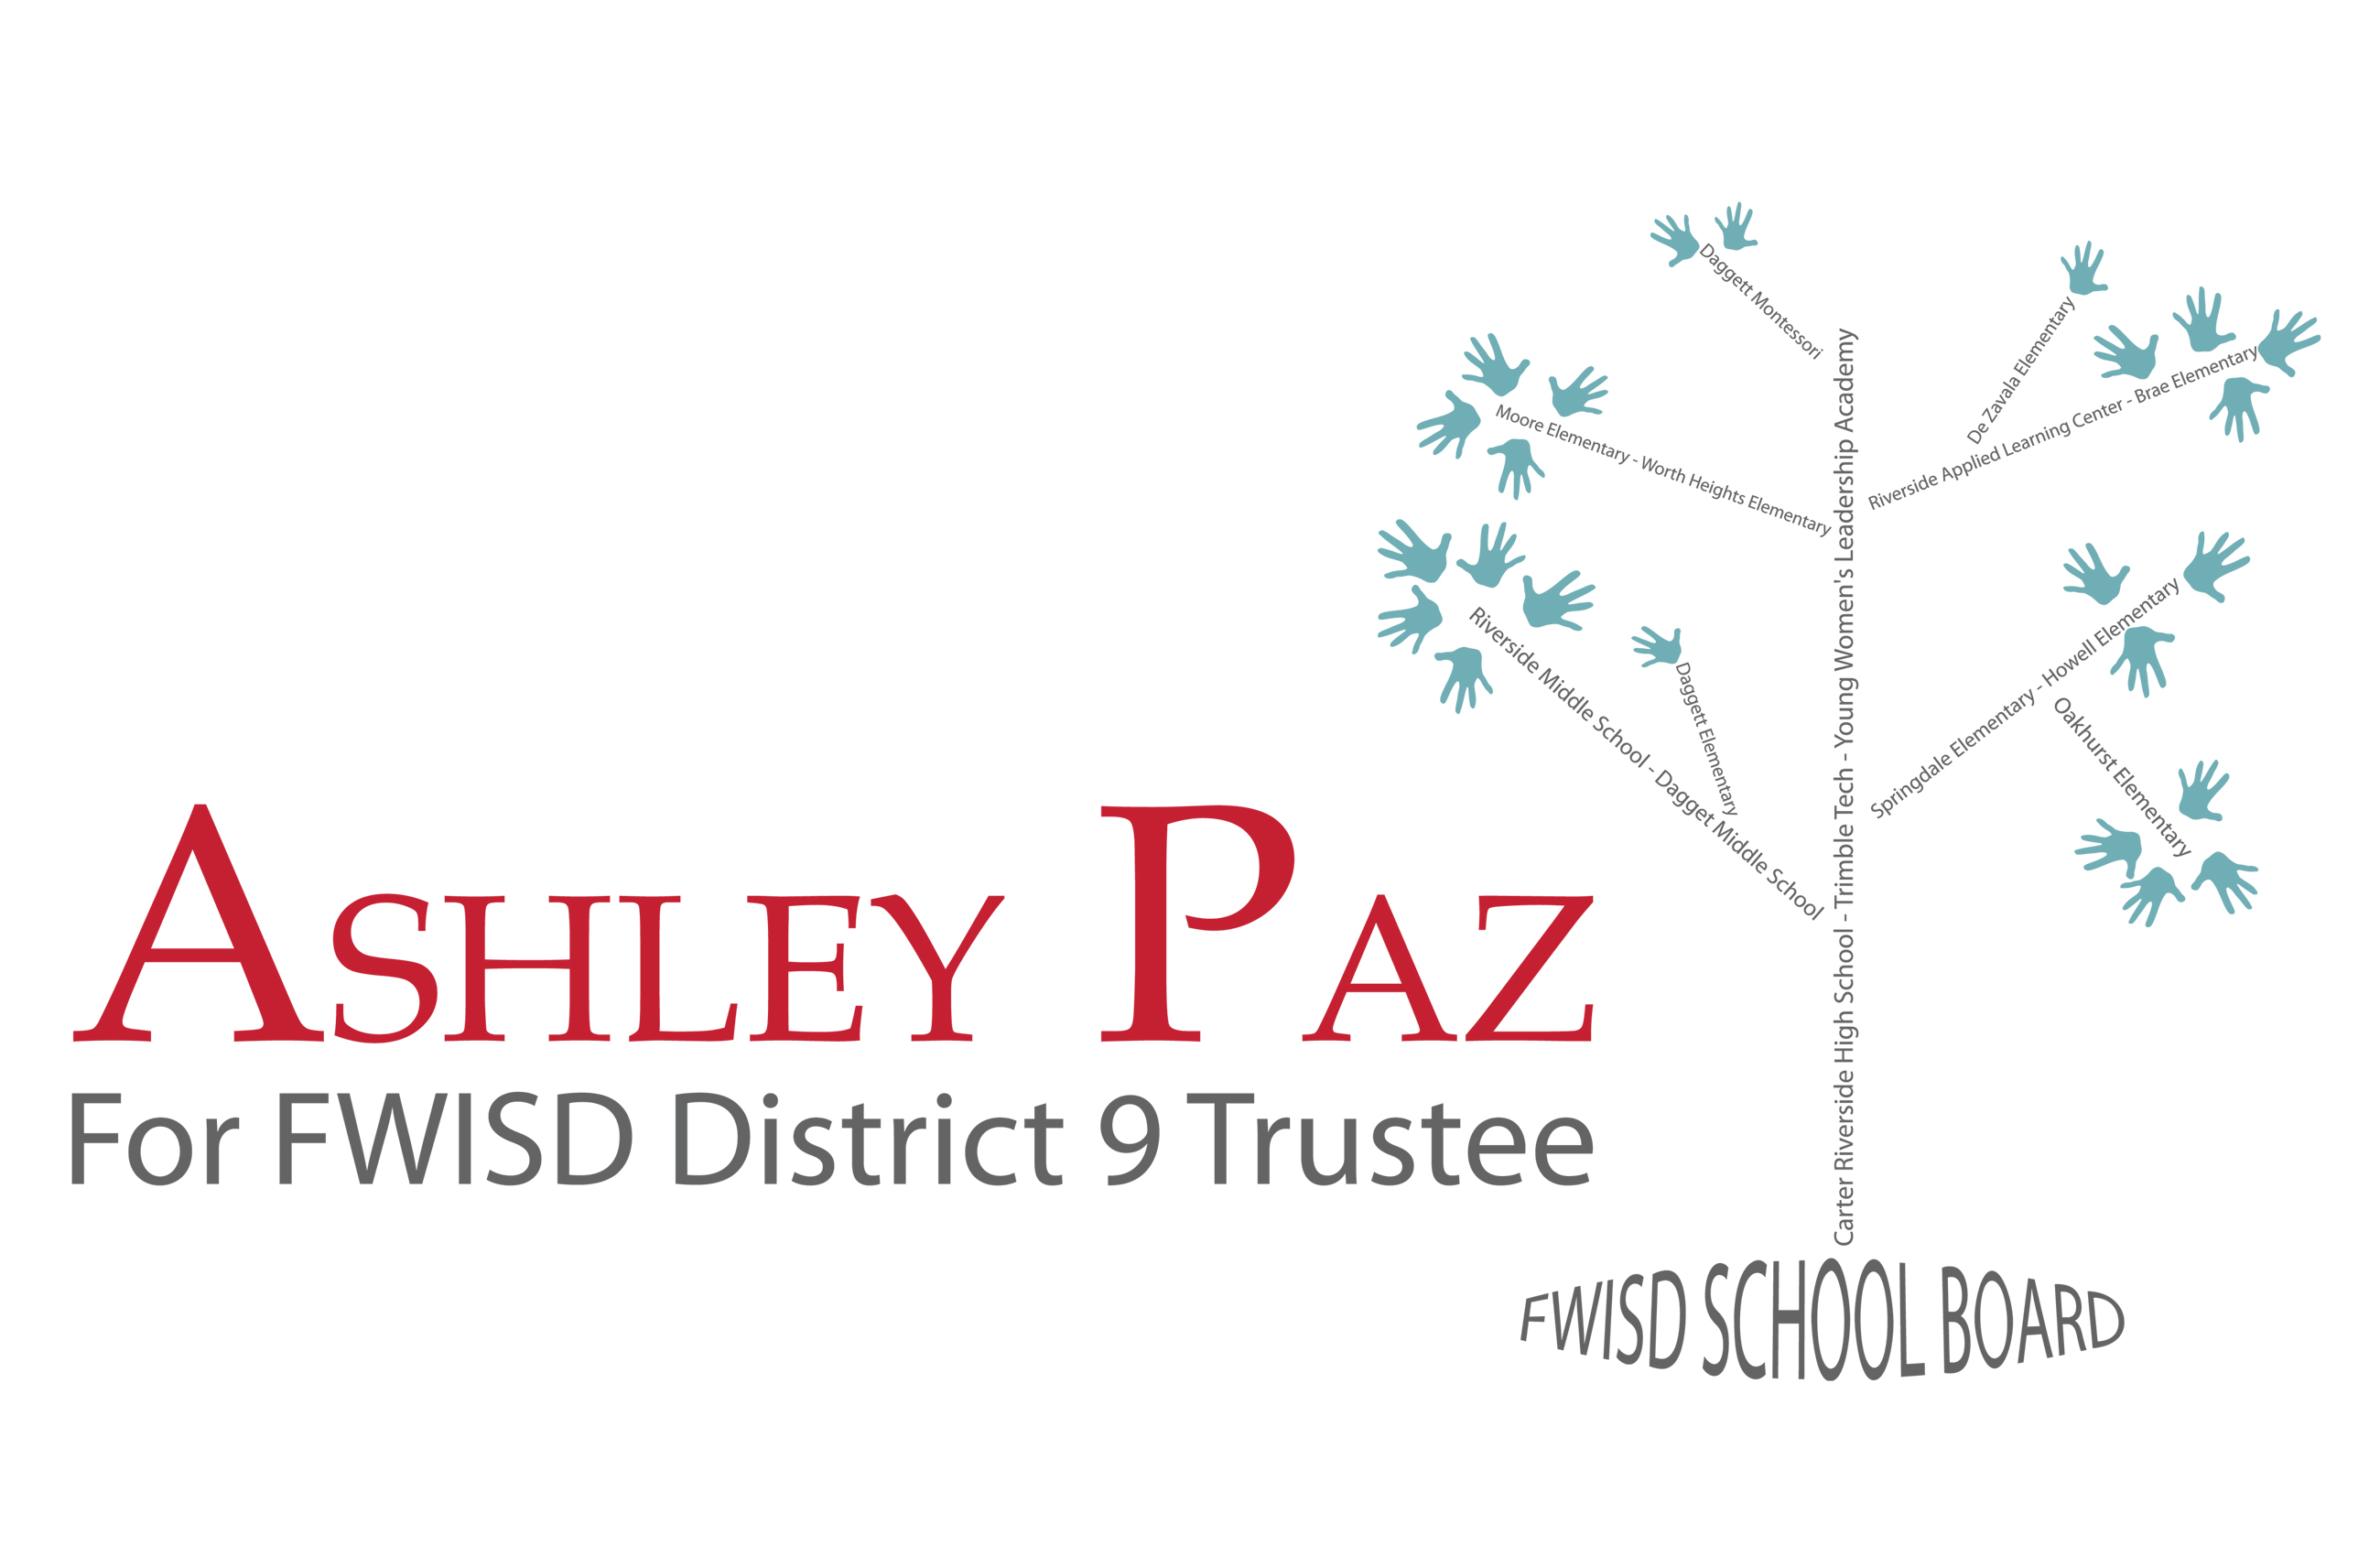 Ashley Paz for FWISD District 9 Trustee